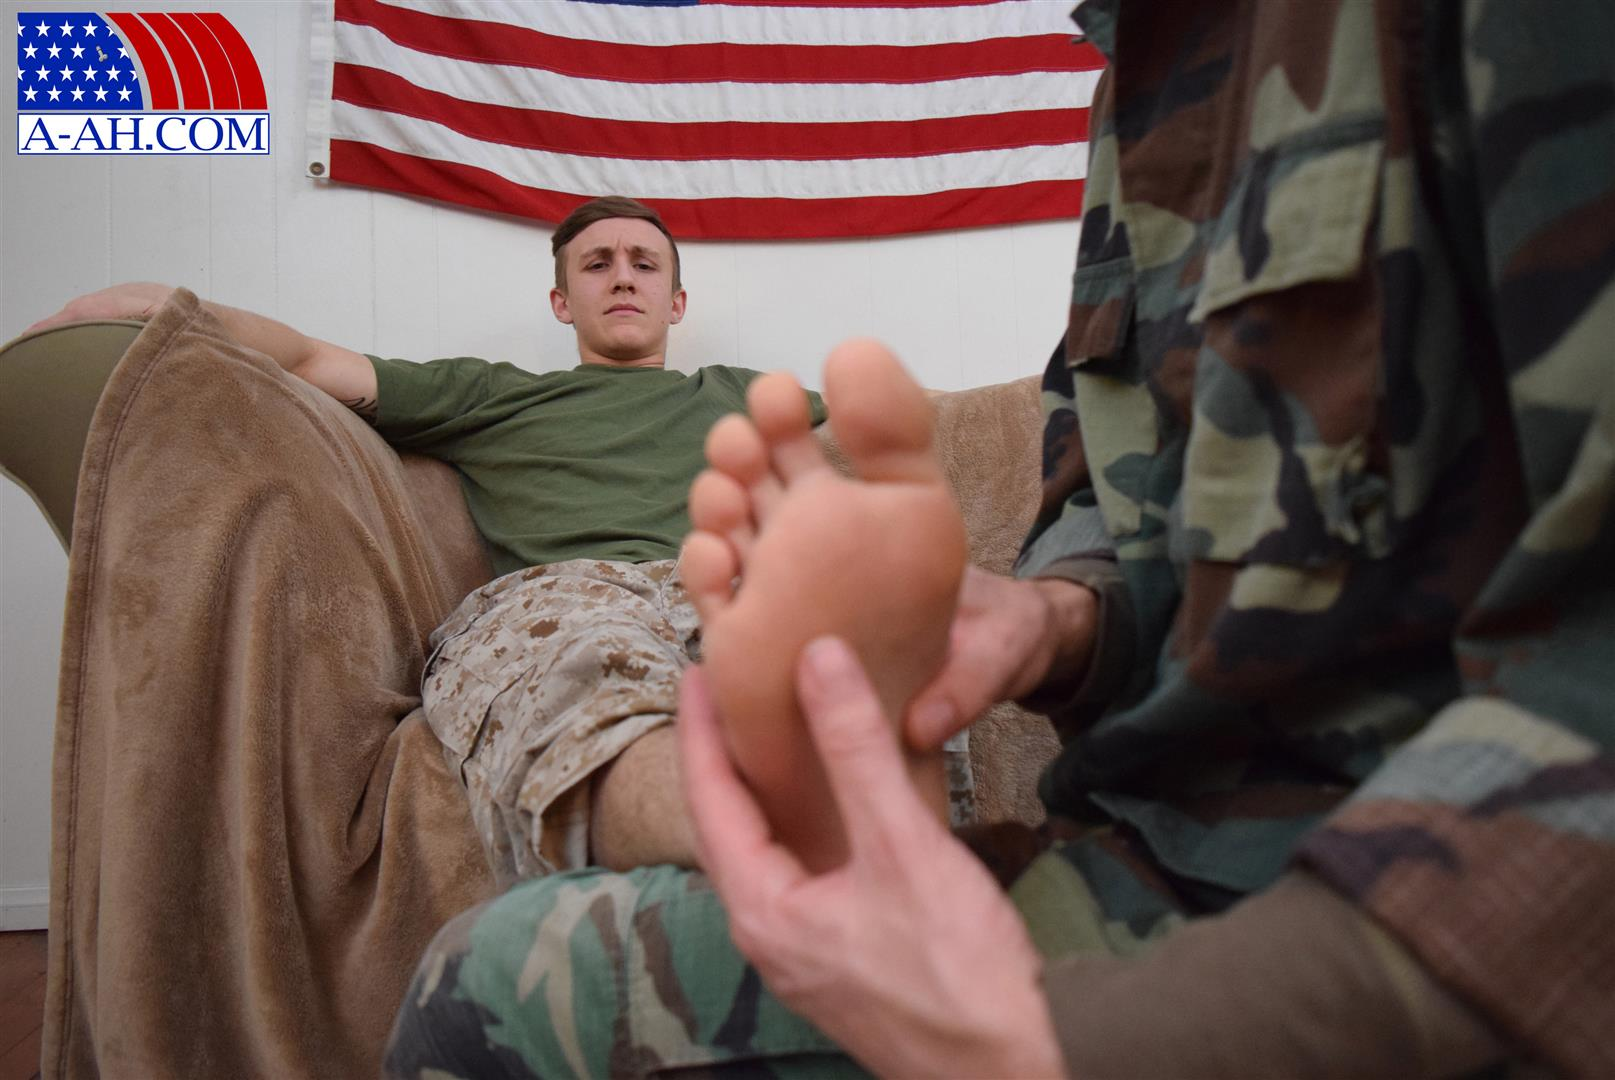 All American Heroes Jett and Alex Naked Army Guy Gets First Gay Blowjob Amateur Gay Porn 03 Straight Army Private Gets A Foot Massage and His First Gay Blow Job